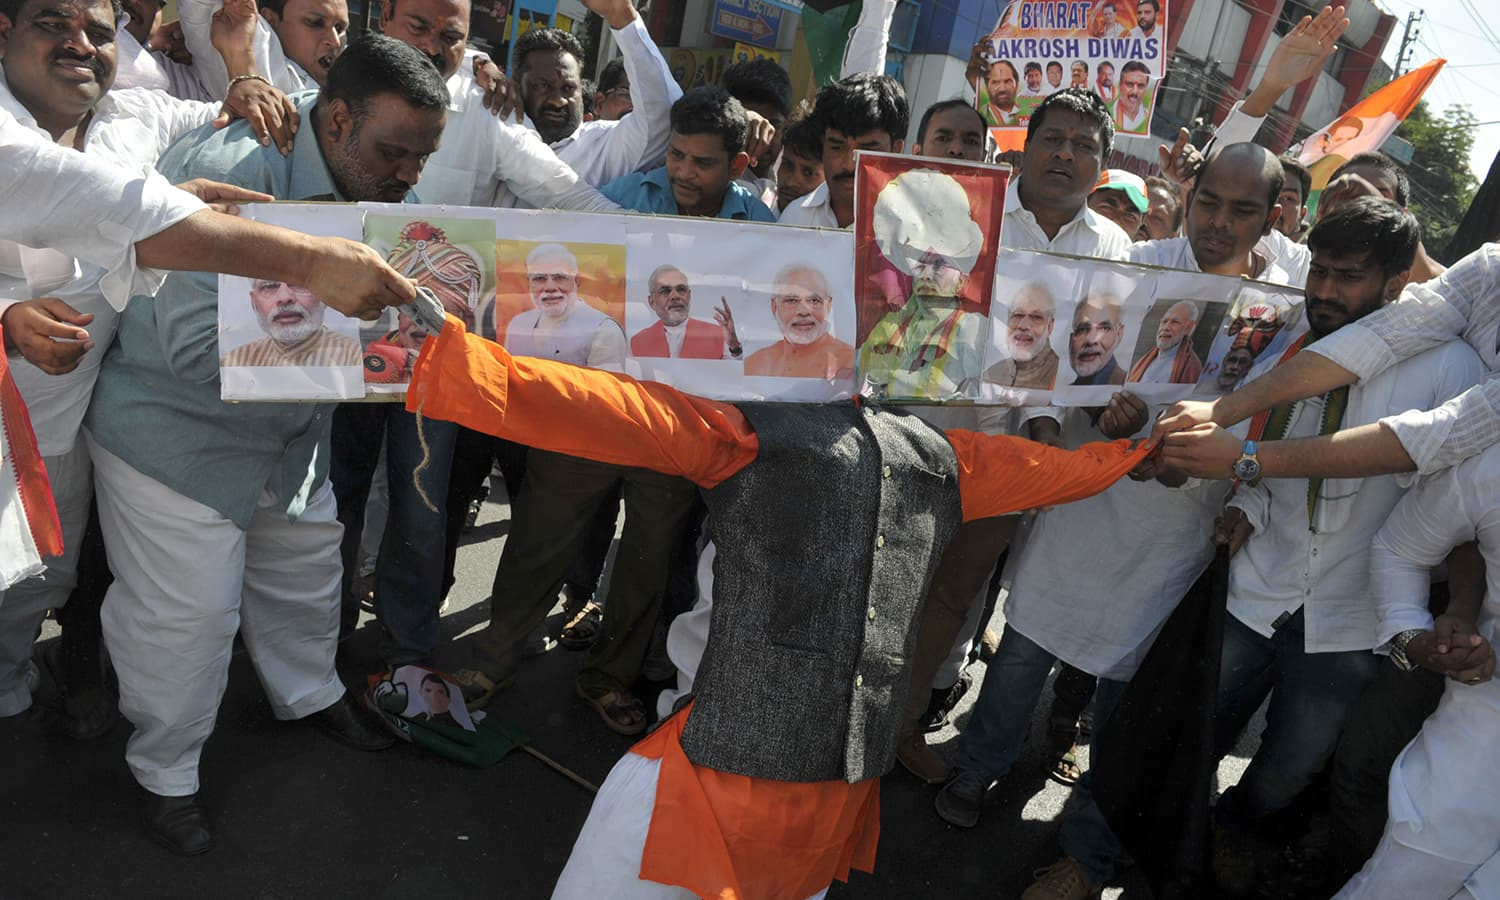 Members of the Congress party hold an effigy representing Indian Prime Minister Narendra Modi during a protest as part of 'Jan Aakrosh Diwas' in Hyderabad. ─AFP